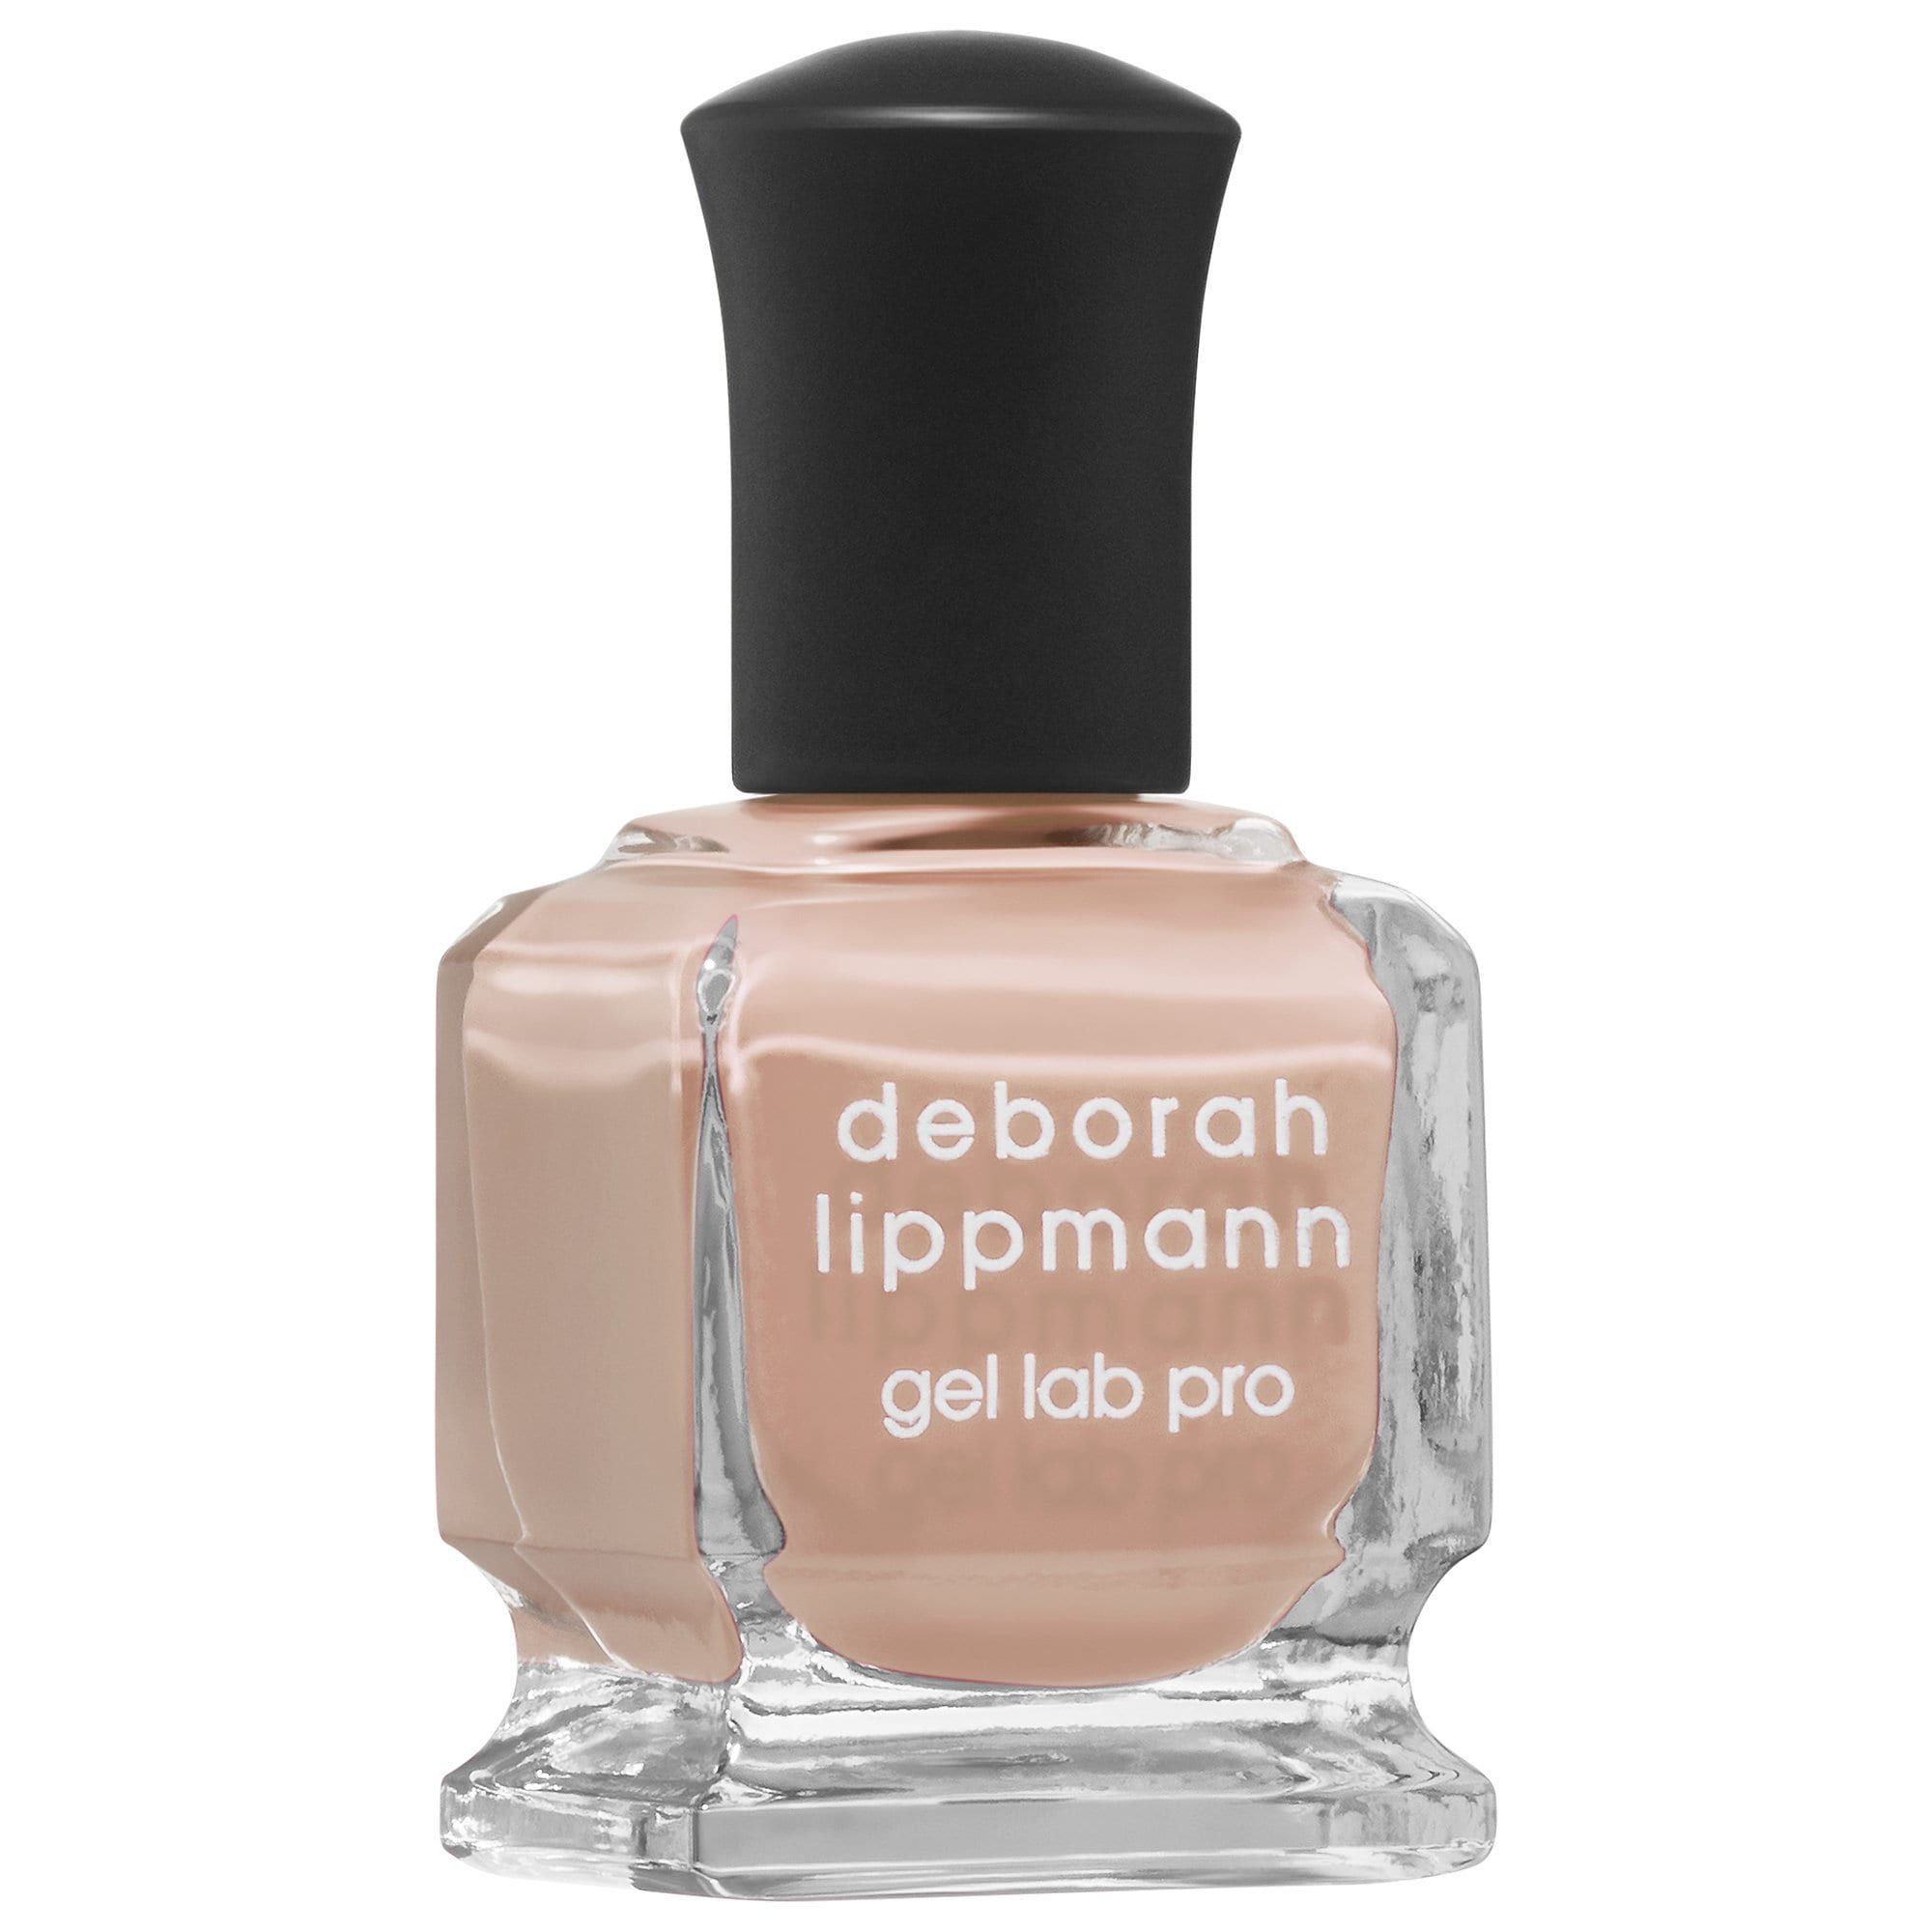 Deborah Lippmann Permanent Vacation Gel Lab Pro Collection Written